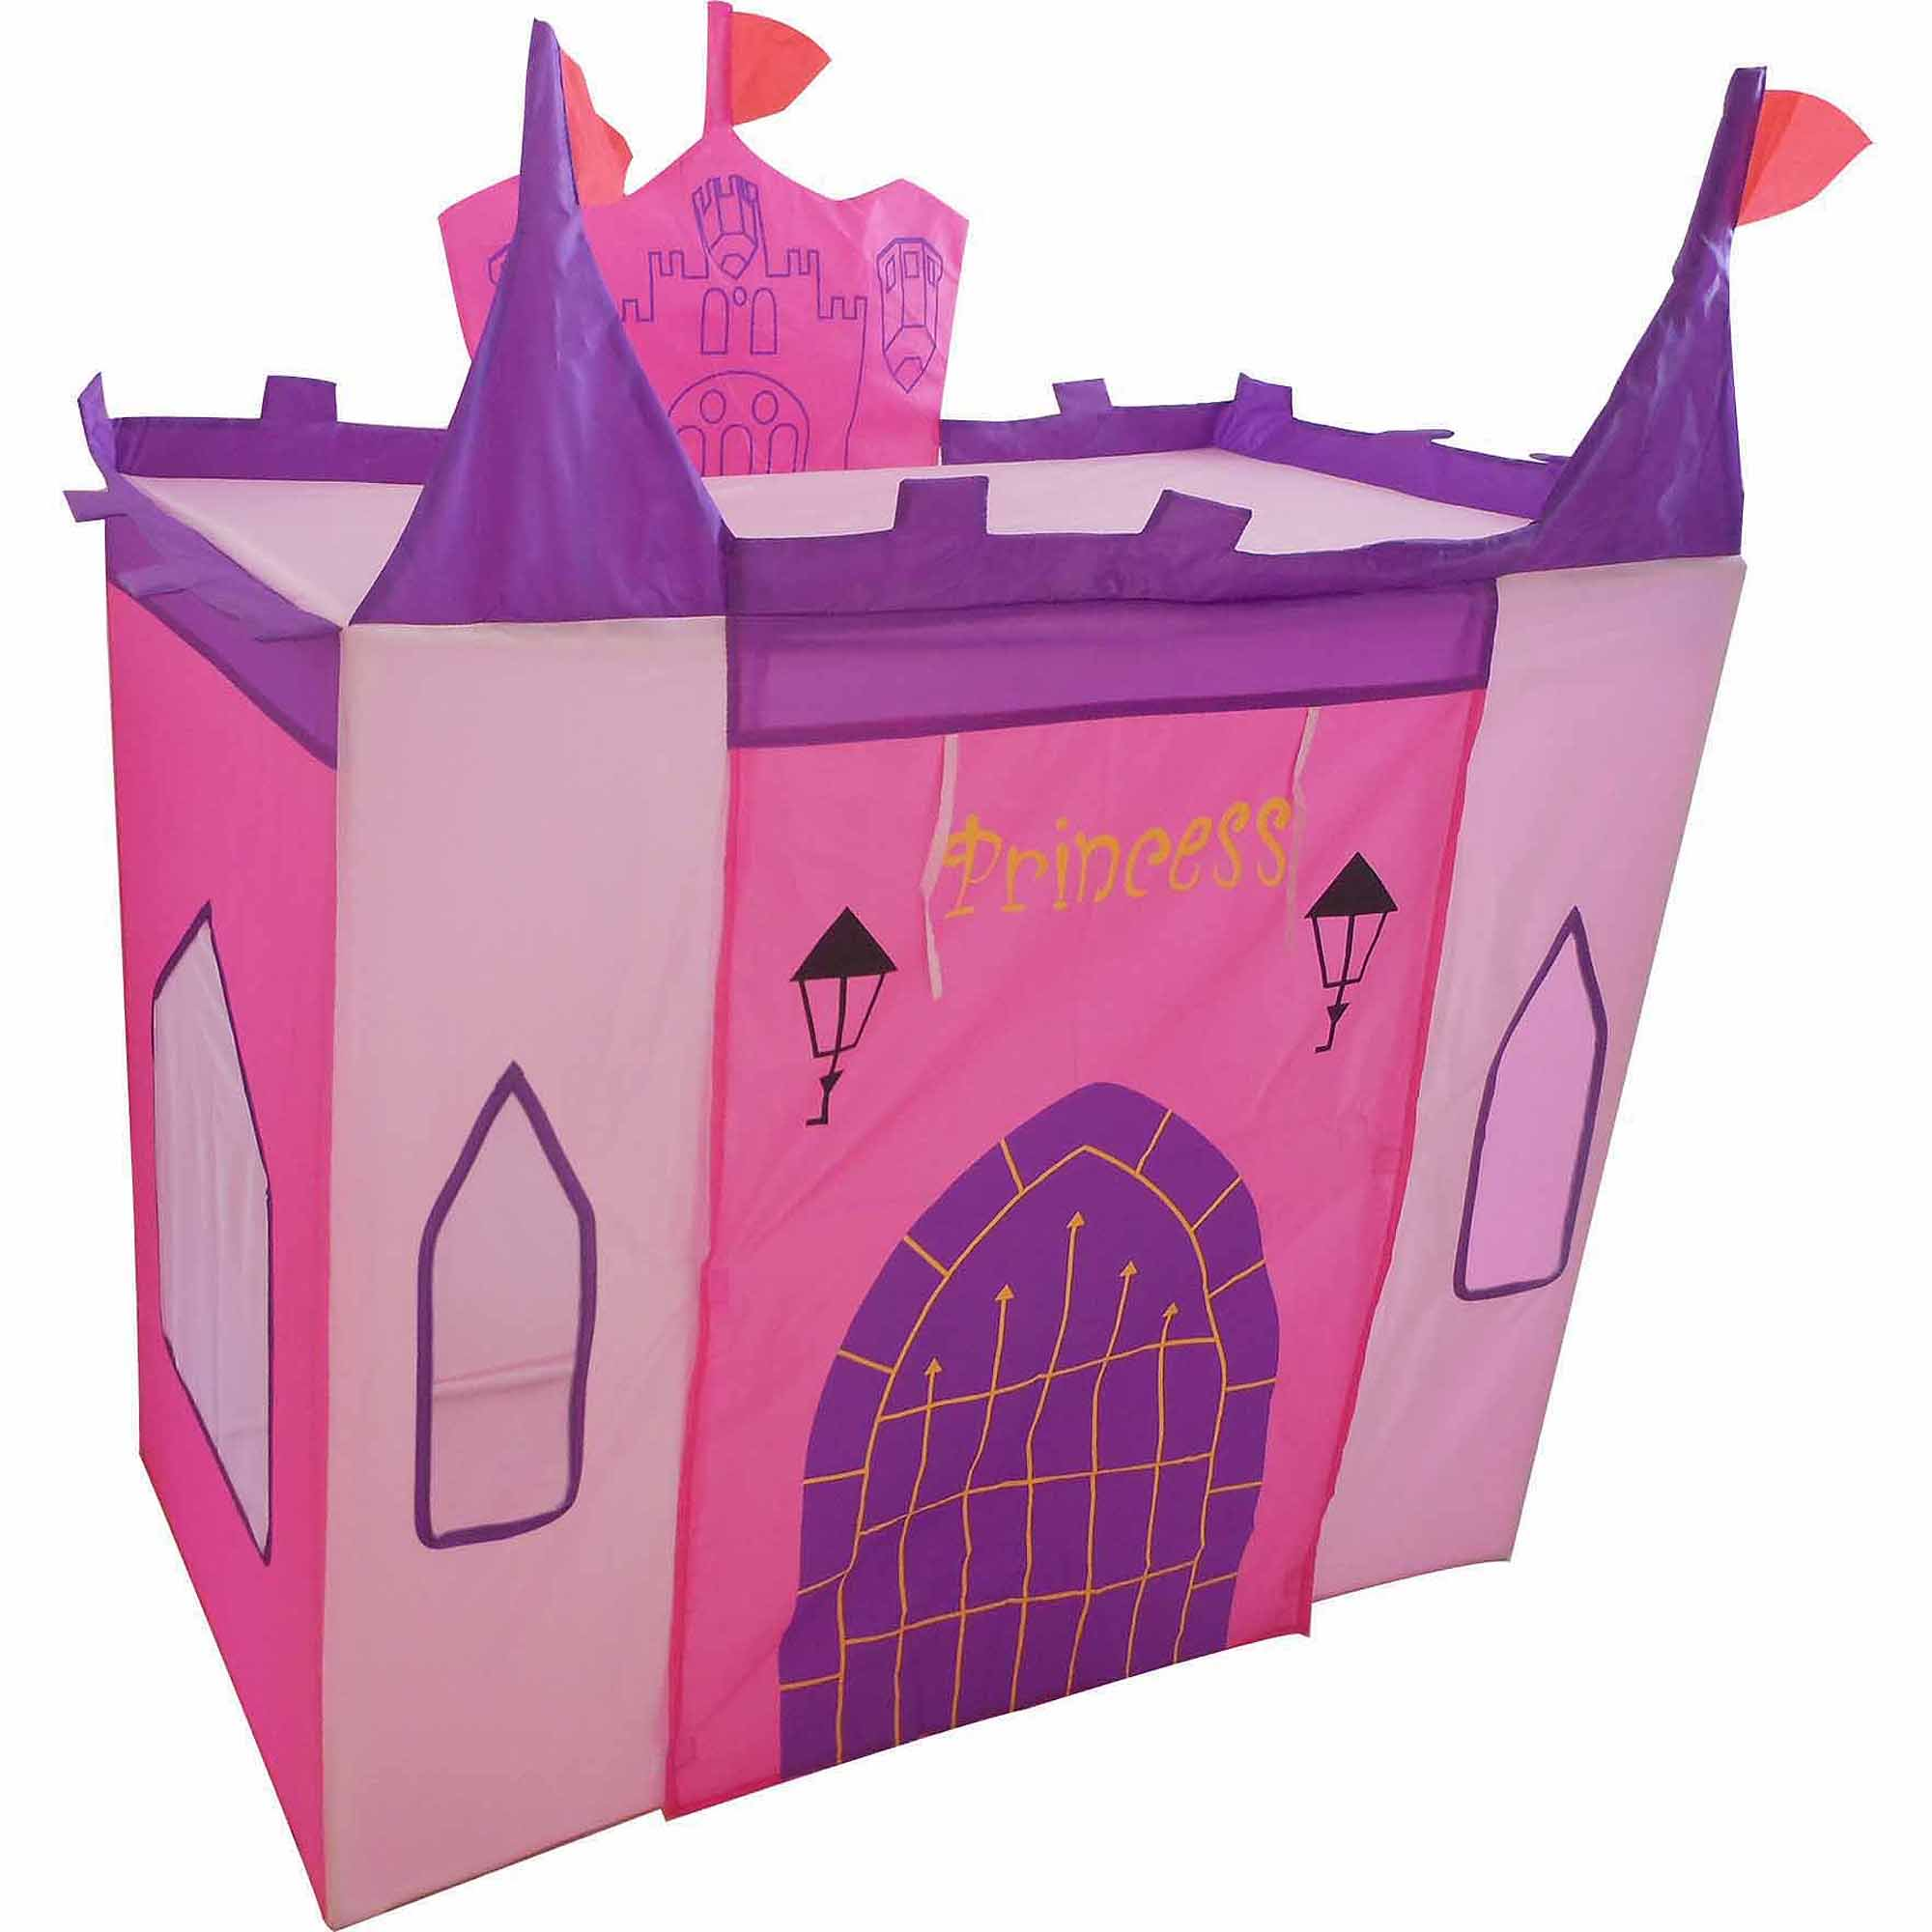 Enchanted Princess Castle Play Tent  sc 1 st  Walmart & Enchanted Princess Castle Play Tent - Walmart.com